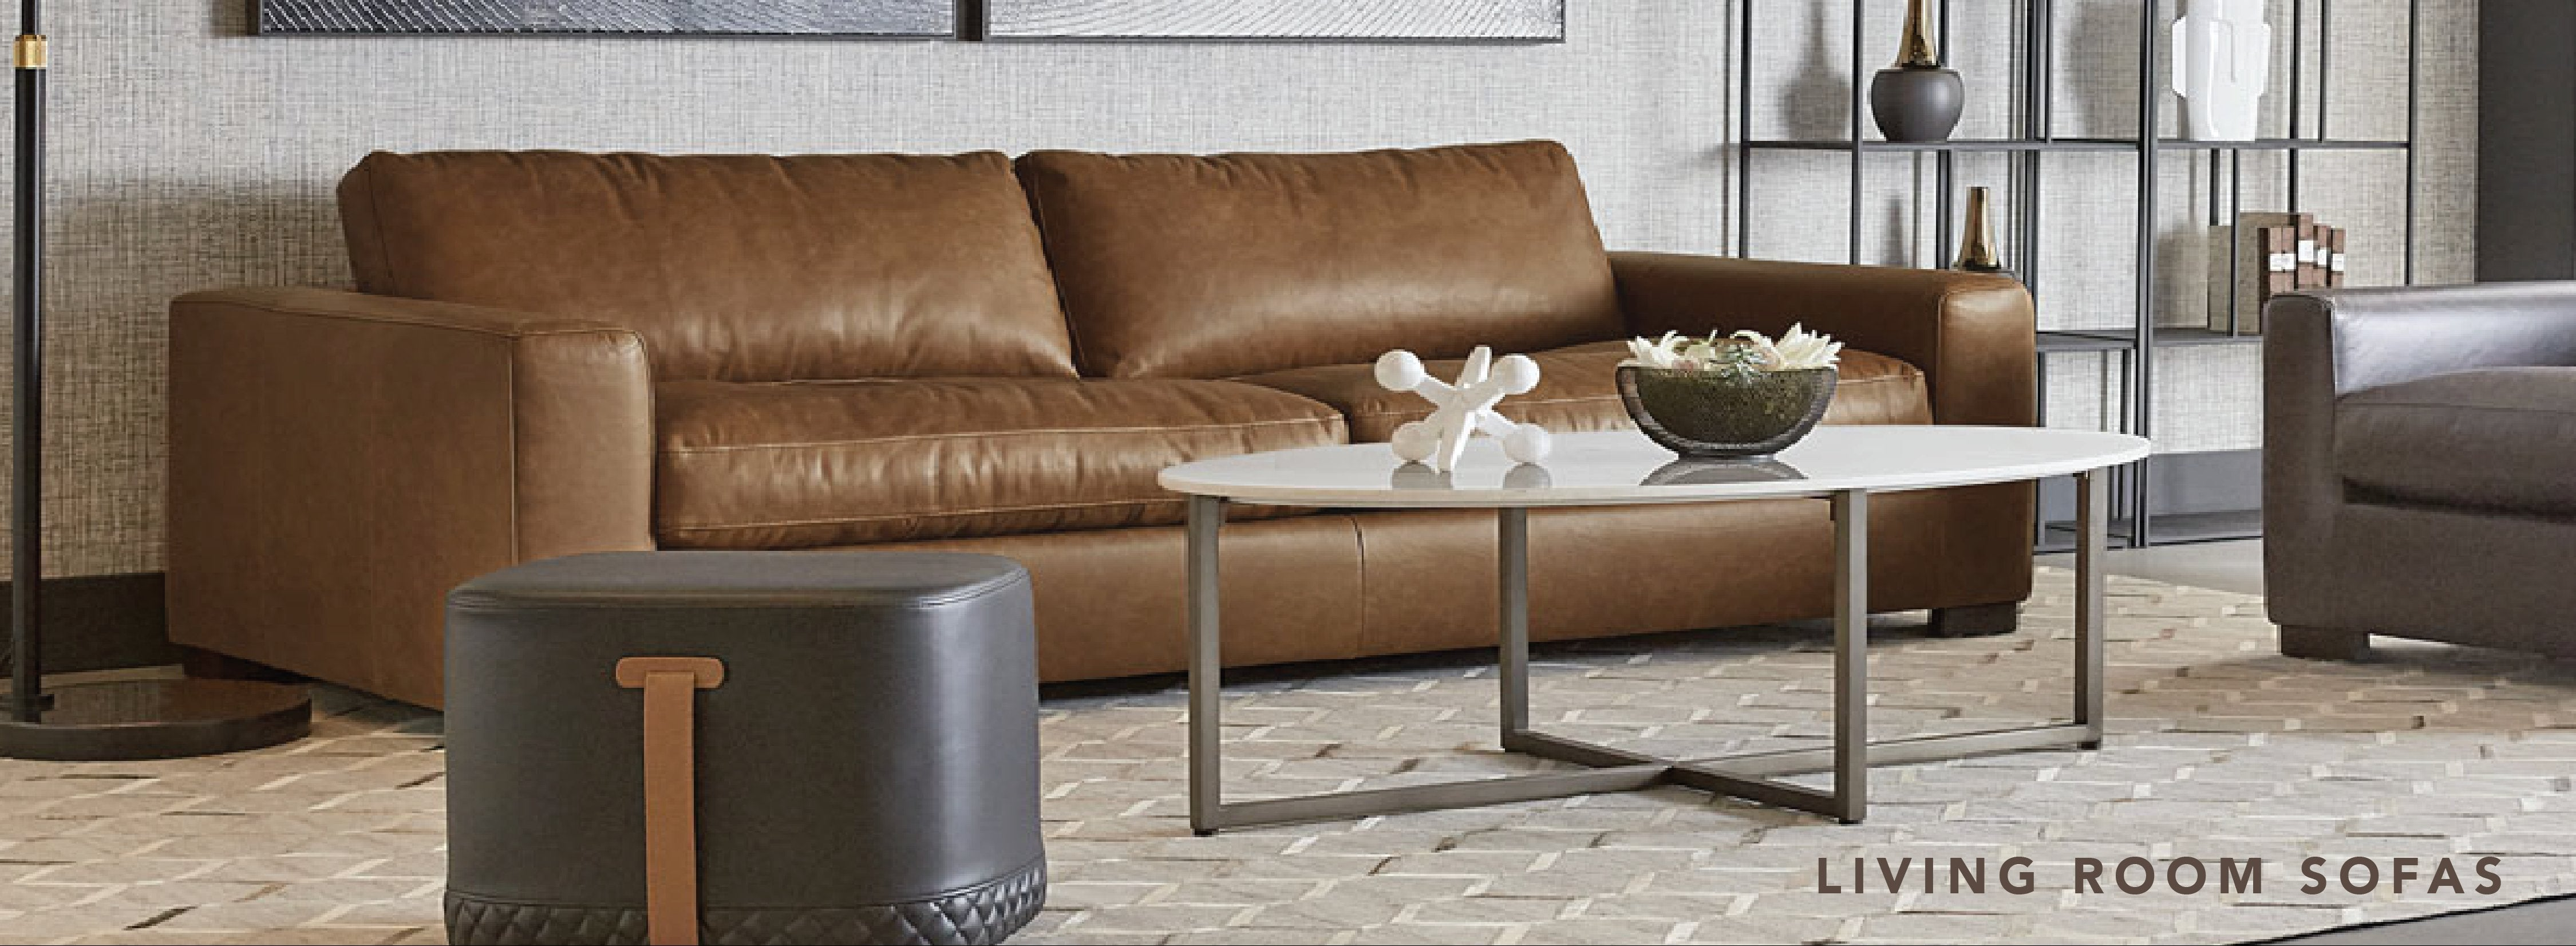 photo stock sofa room free iso try photos adobe republic living download